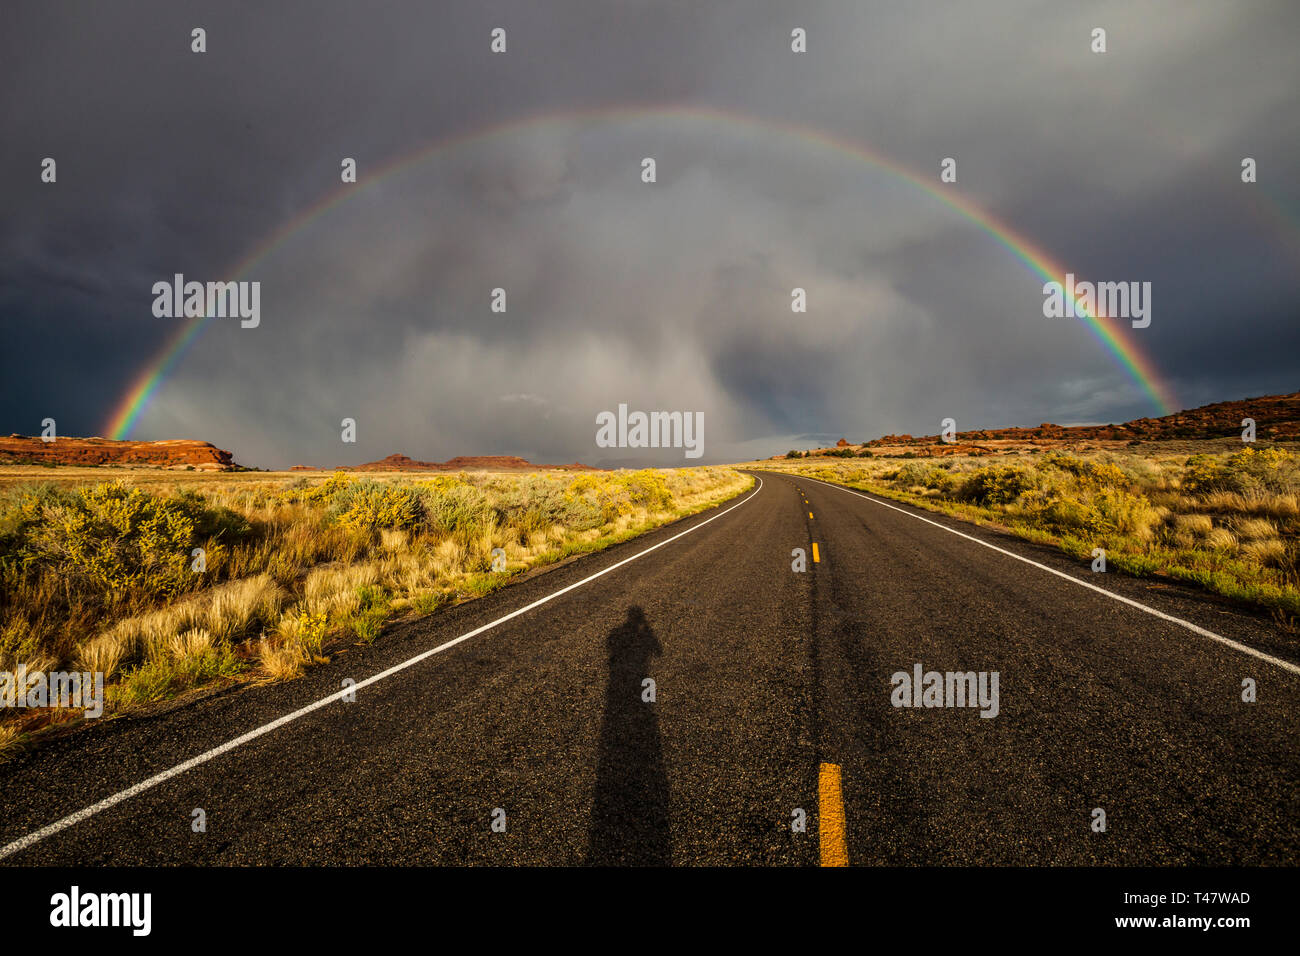 The shadow of the photographer shows on the road below a full rainbow and thuderstorm clouds over Scenic Highway 211 in Canyonlands National Park, Sou Stock Photo